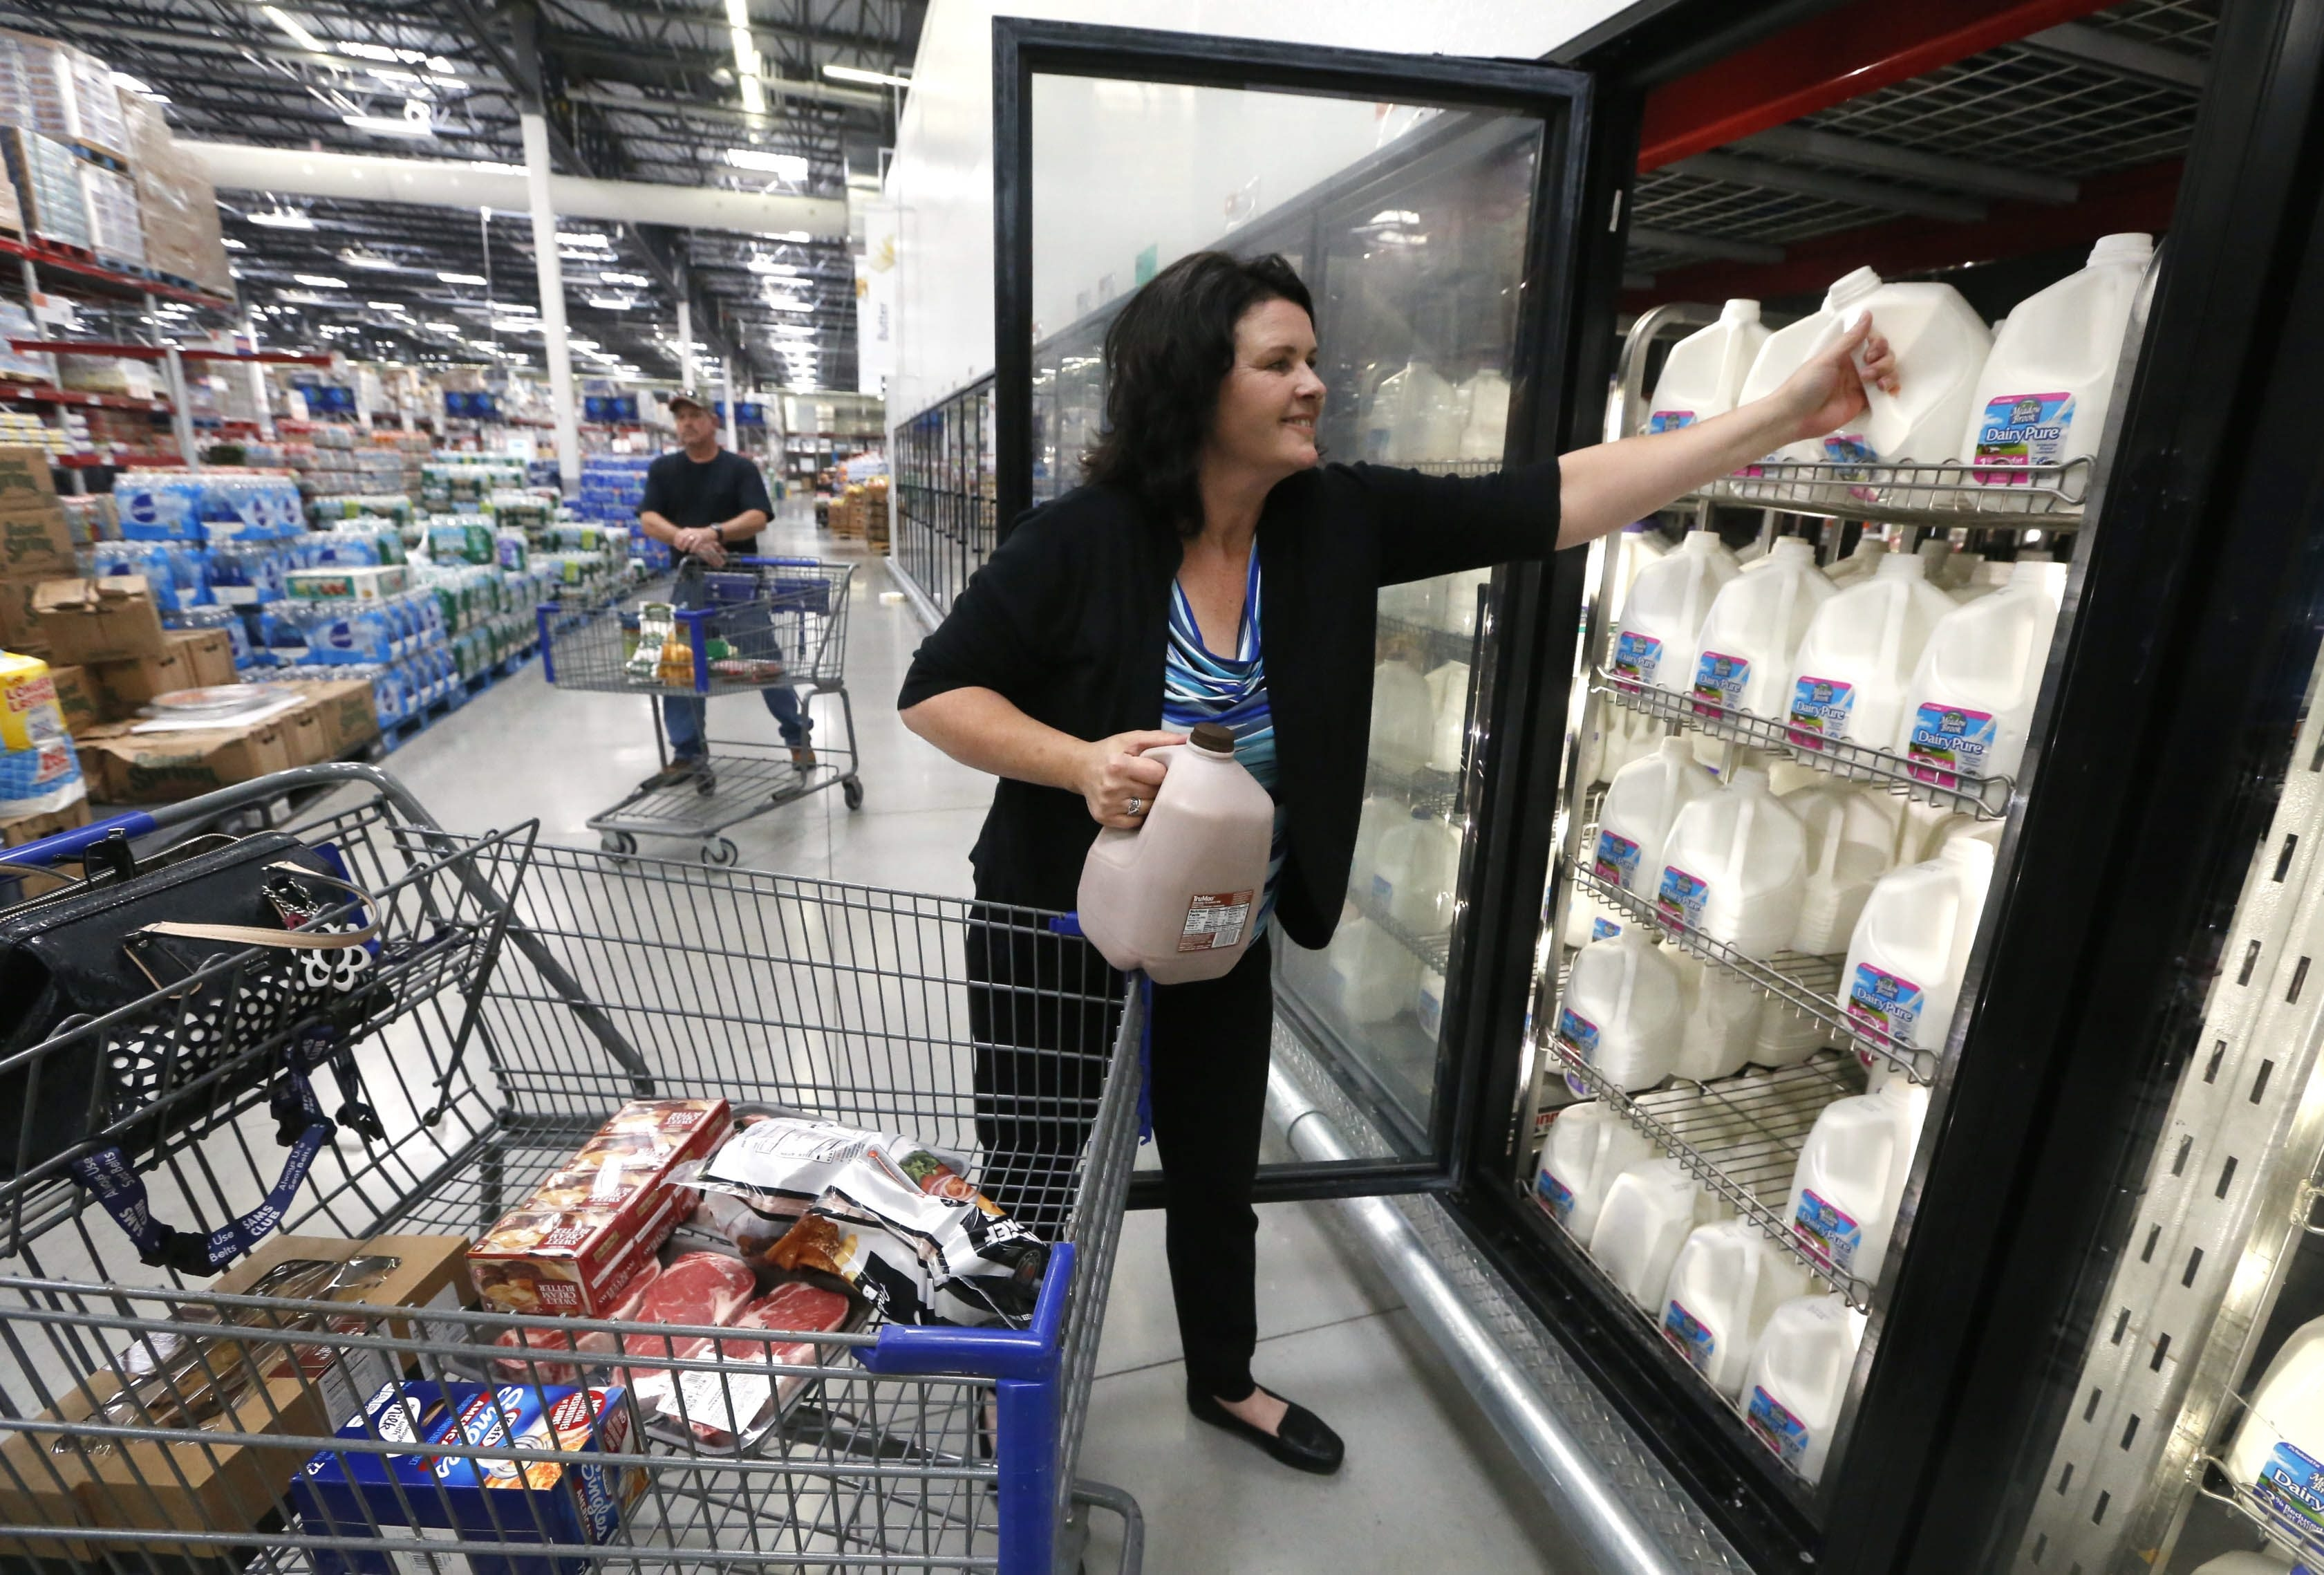 """Lisa Aulbrook of Niagara Falls, Ont., shops for groceries at Sam's Club in Niagara Falls, N.Y. Canadian shoppers find they can save significantly on their monthly grocery bills by making a short trek across the border to shop in U.S. supermarkets.   """"This would cost $75 at home. It's like a rich man's food over there."""" Lisa Aulbrook, refering to a giant pork loin priced at $19.48"""